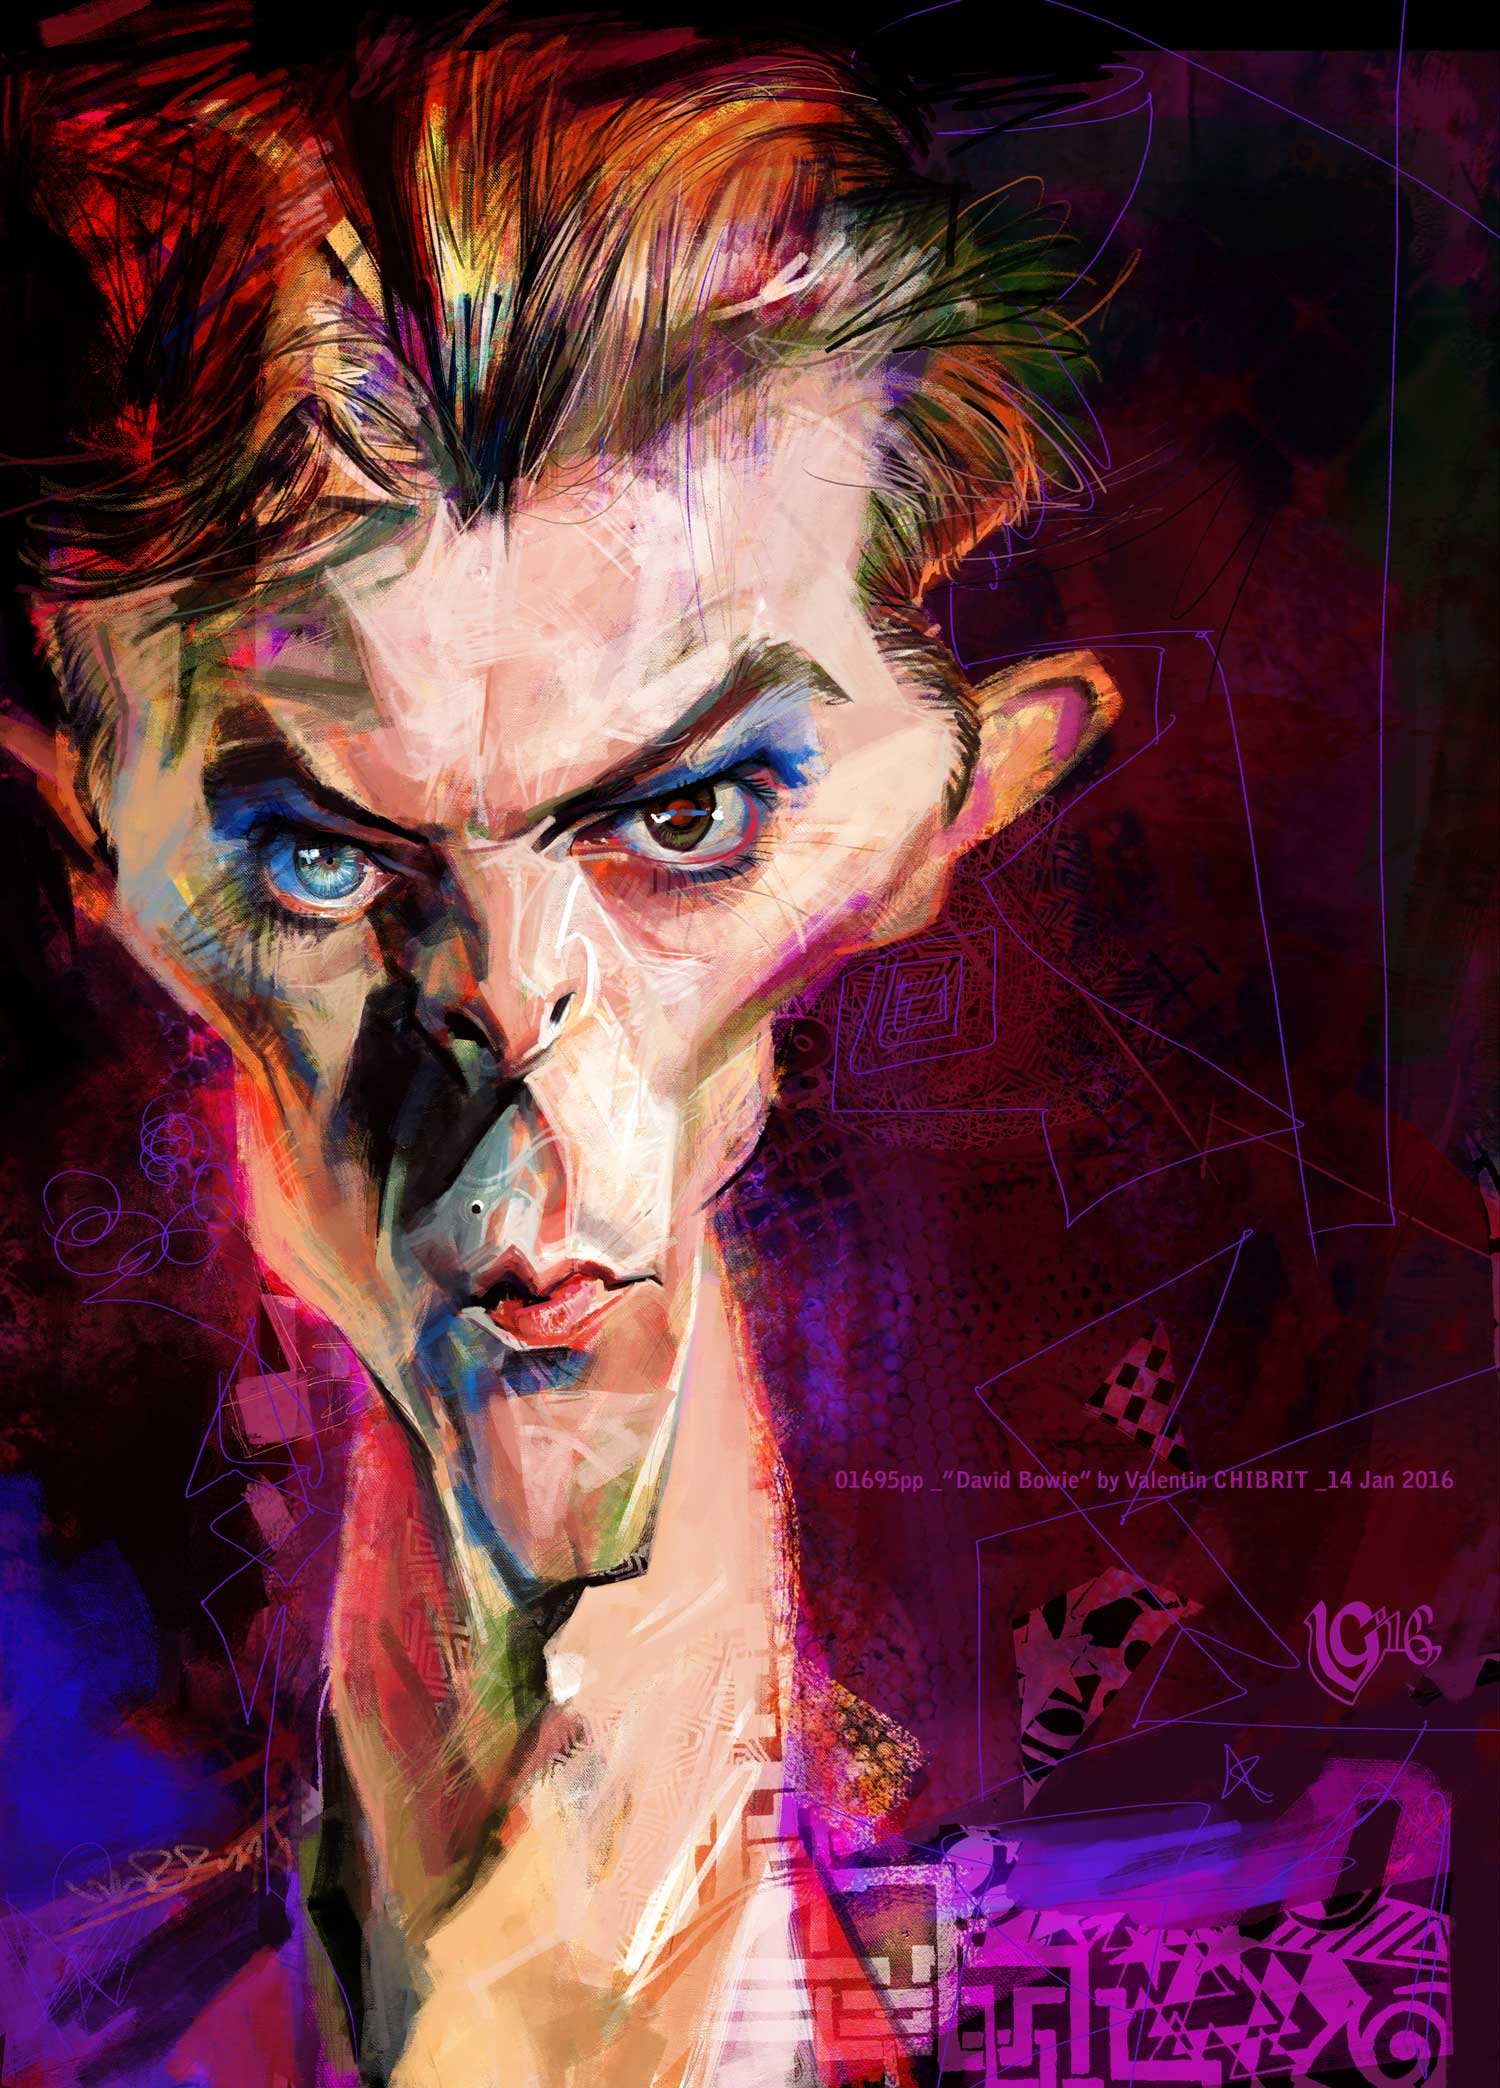 Digital caricature of David Bowie